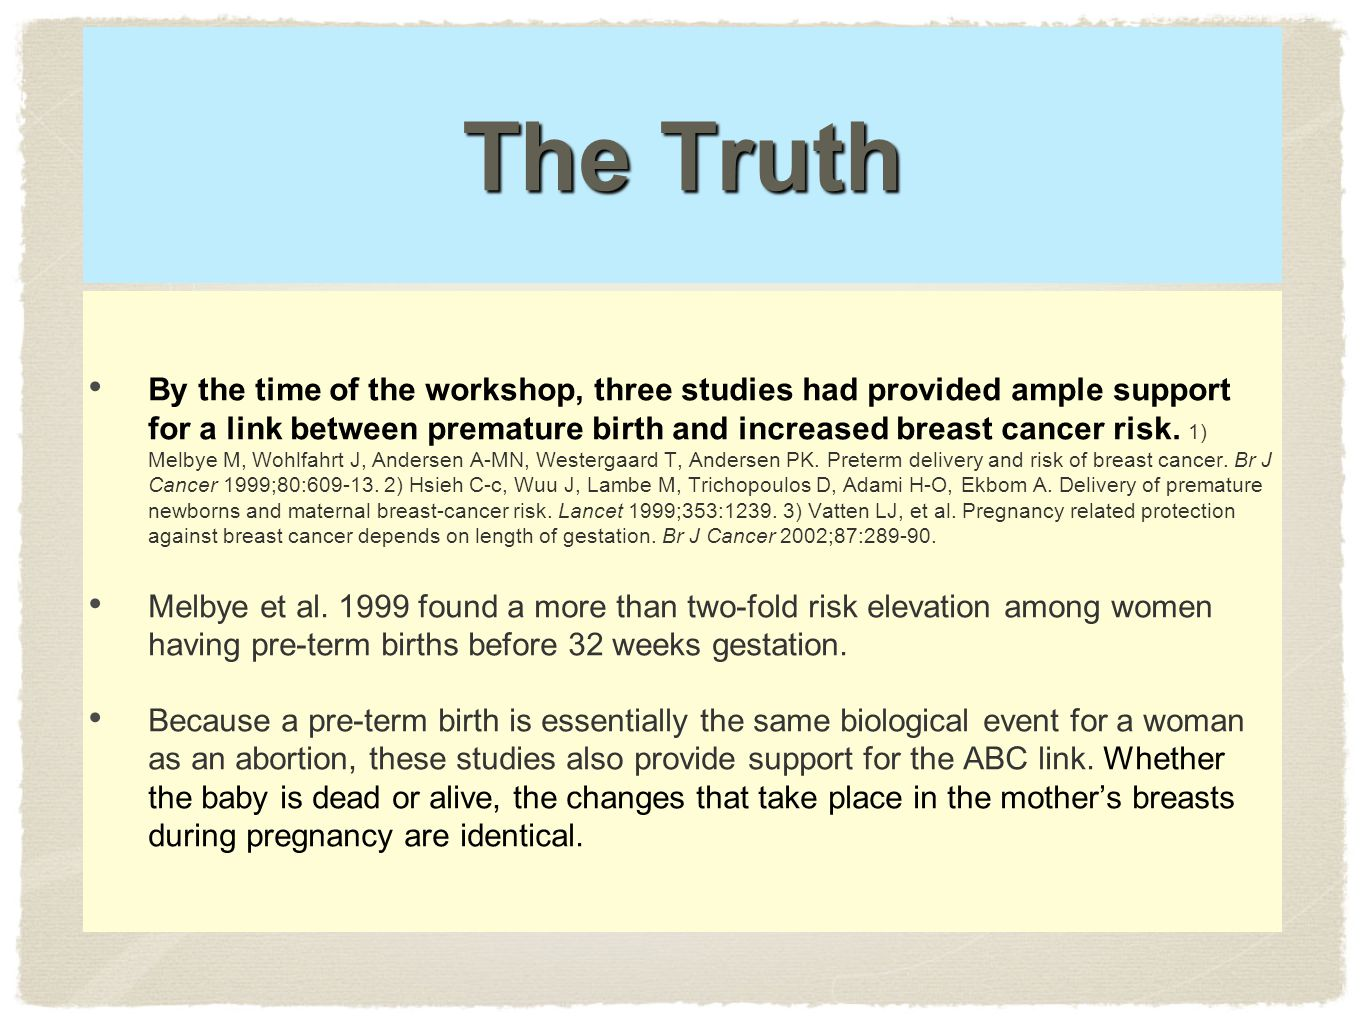 The Truth By the time of the workshop, three studies had provided ample support for a link between premature birth and increased breast cancer risk.